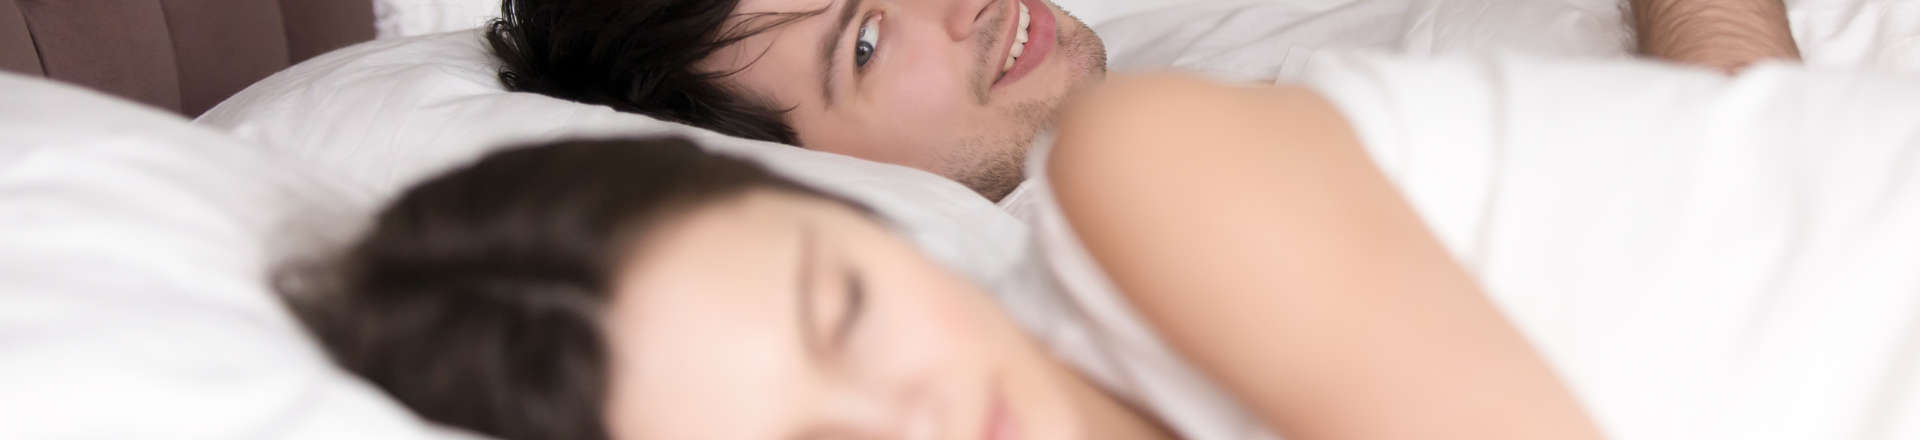 cheerful man in bed texting his lover and glancing at a sleeping by his side woman